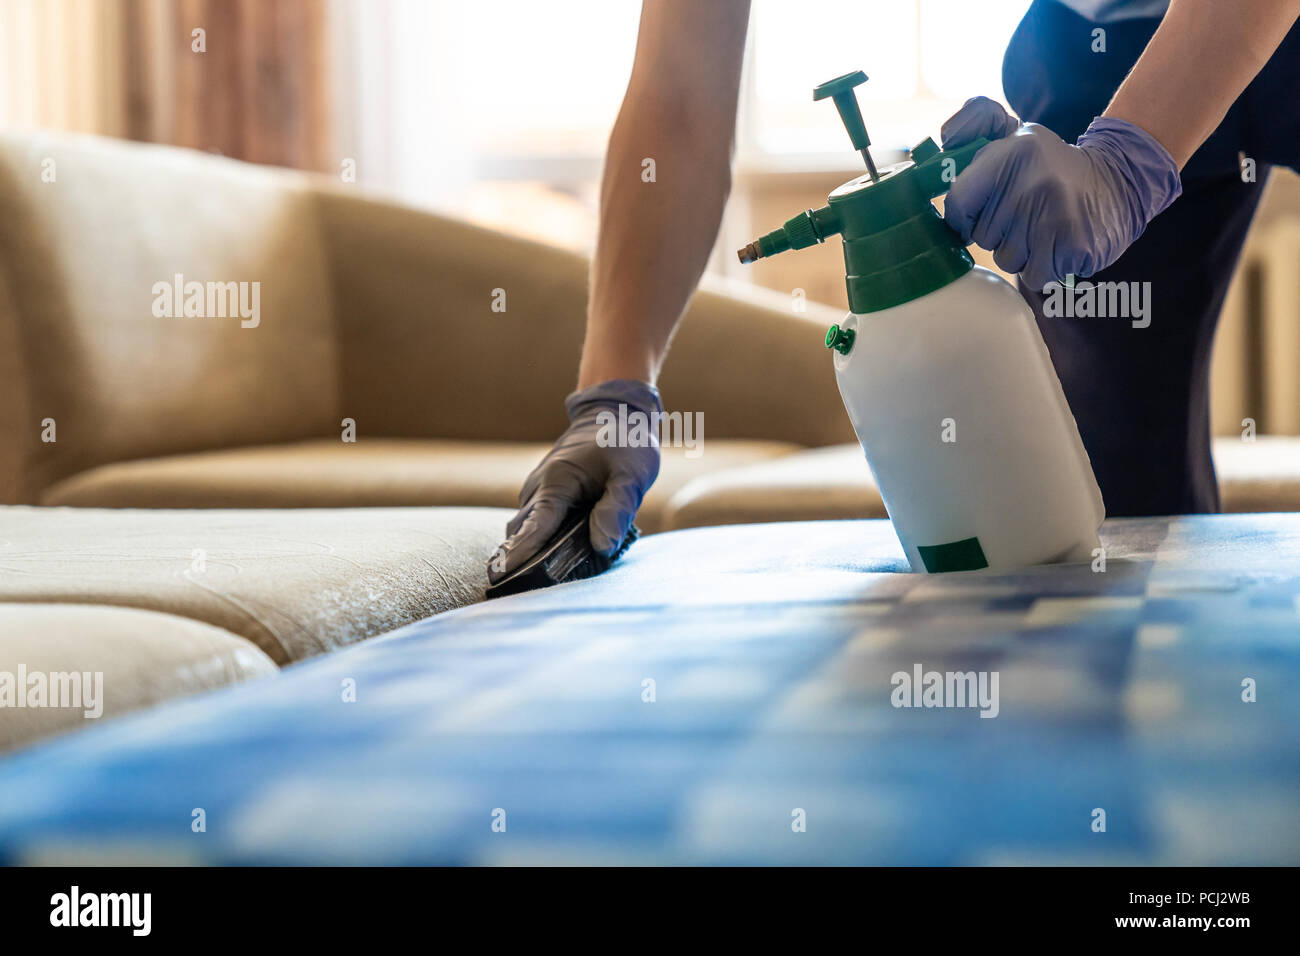 sofa cleaner chester piel envejecida stock photos images alamy closeup of upholstered chemical cleaning image